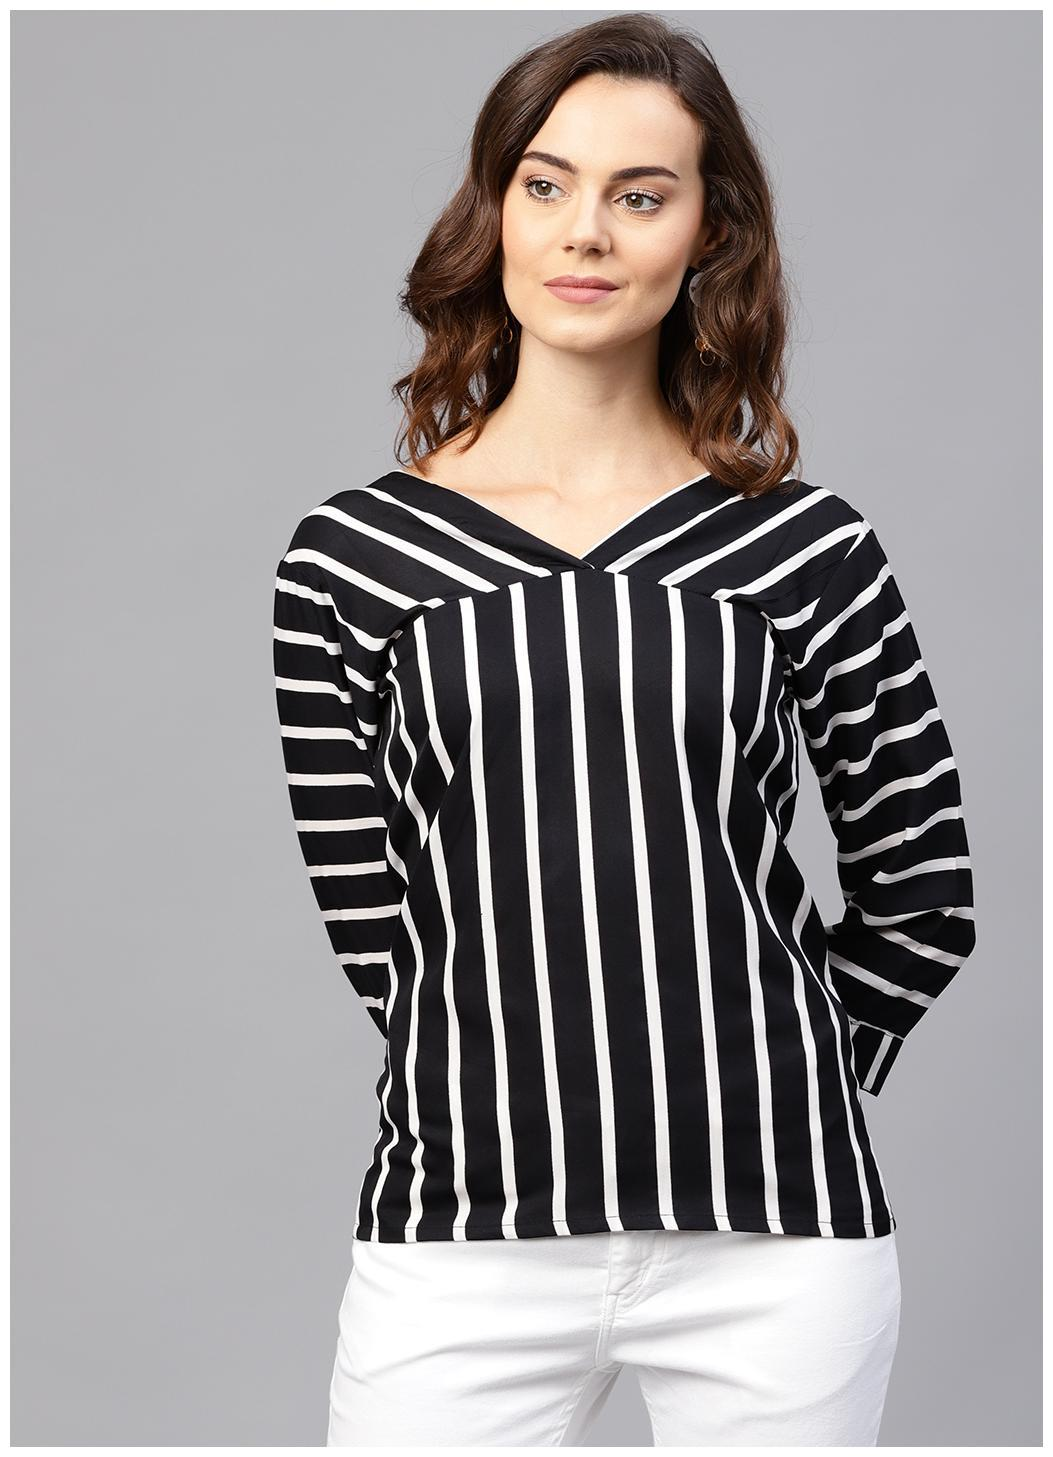 Aasi Black striped 3/4th sleeve shirt style top